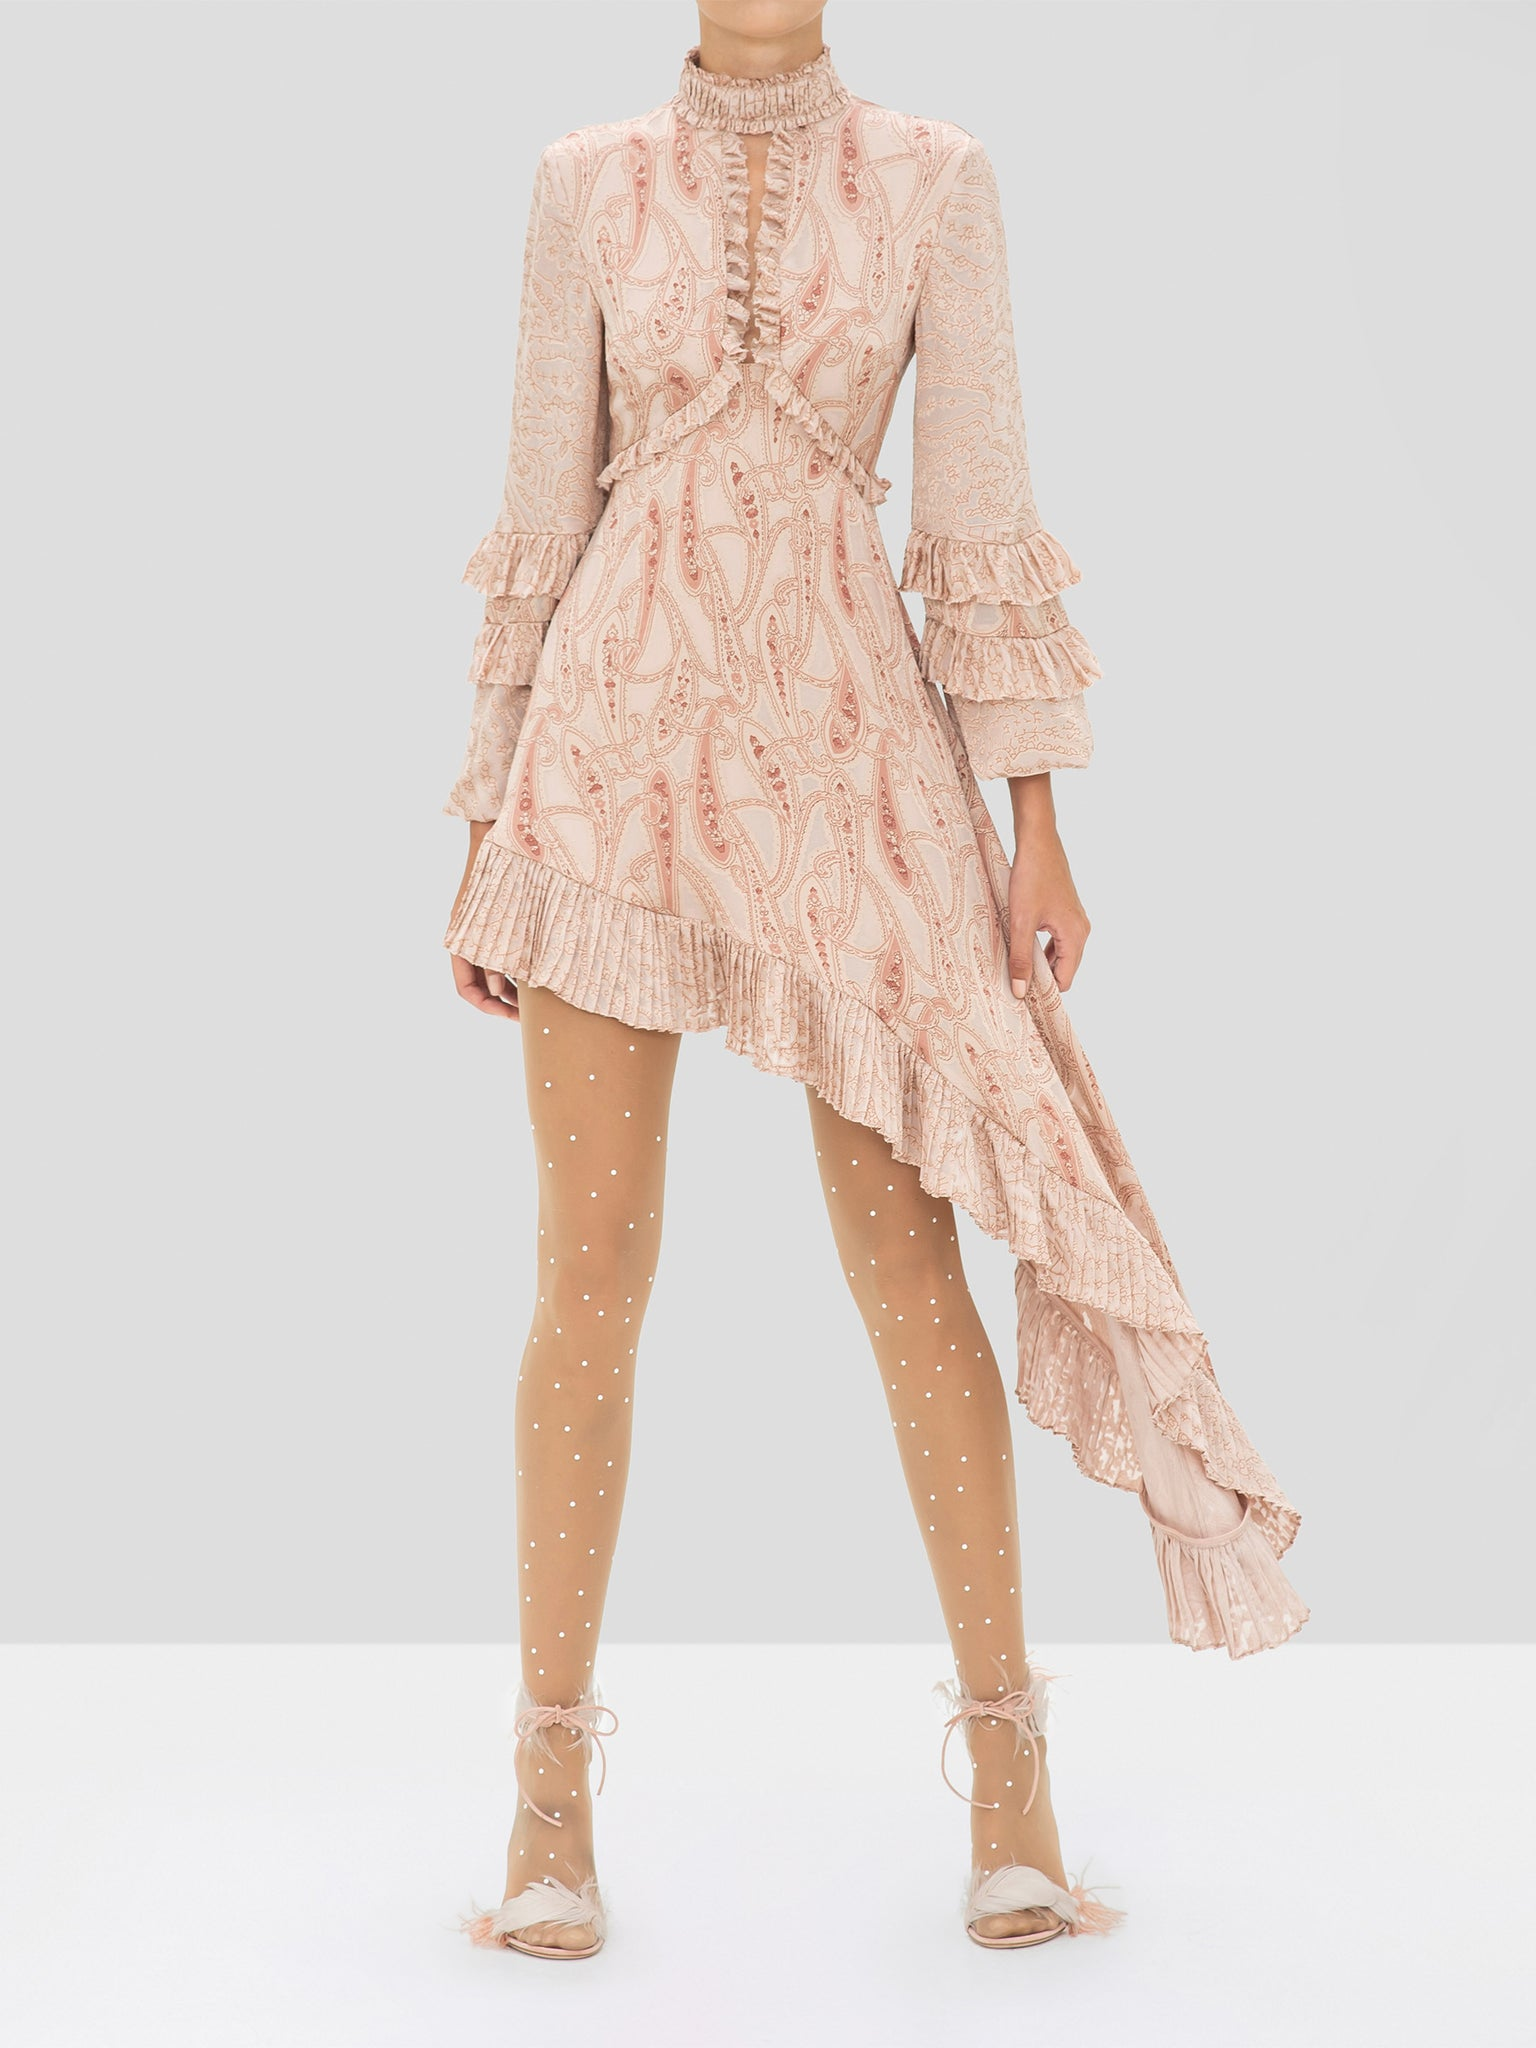 Alexis Liora Dress in Blush Paisley from the Holiday 2019 Ready To Wear Collection